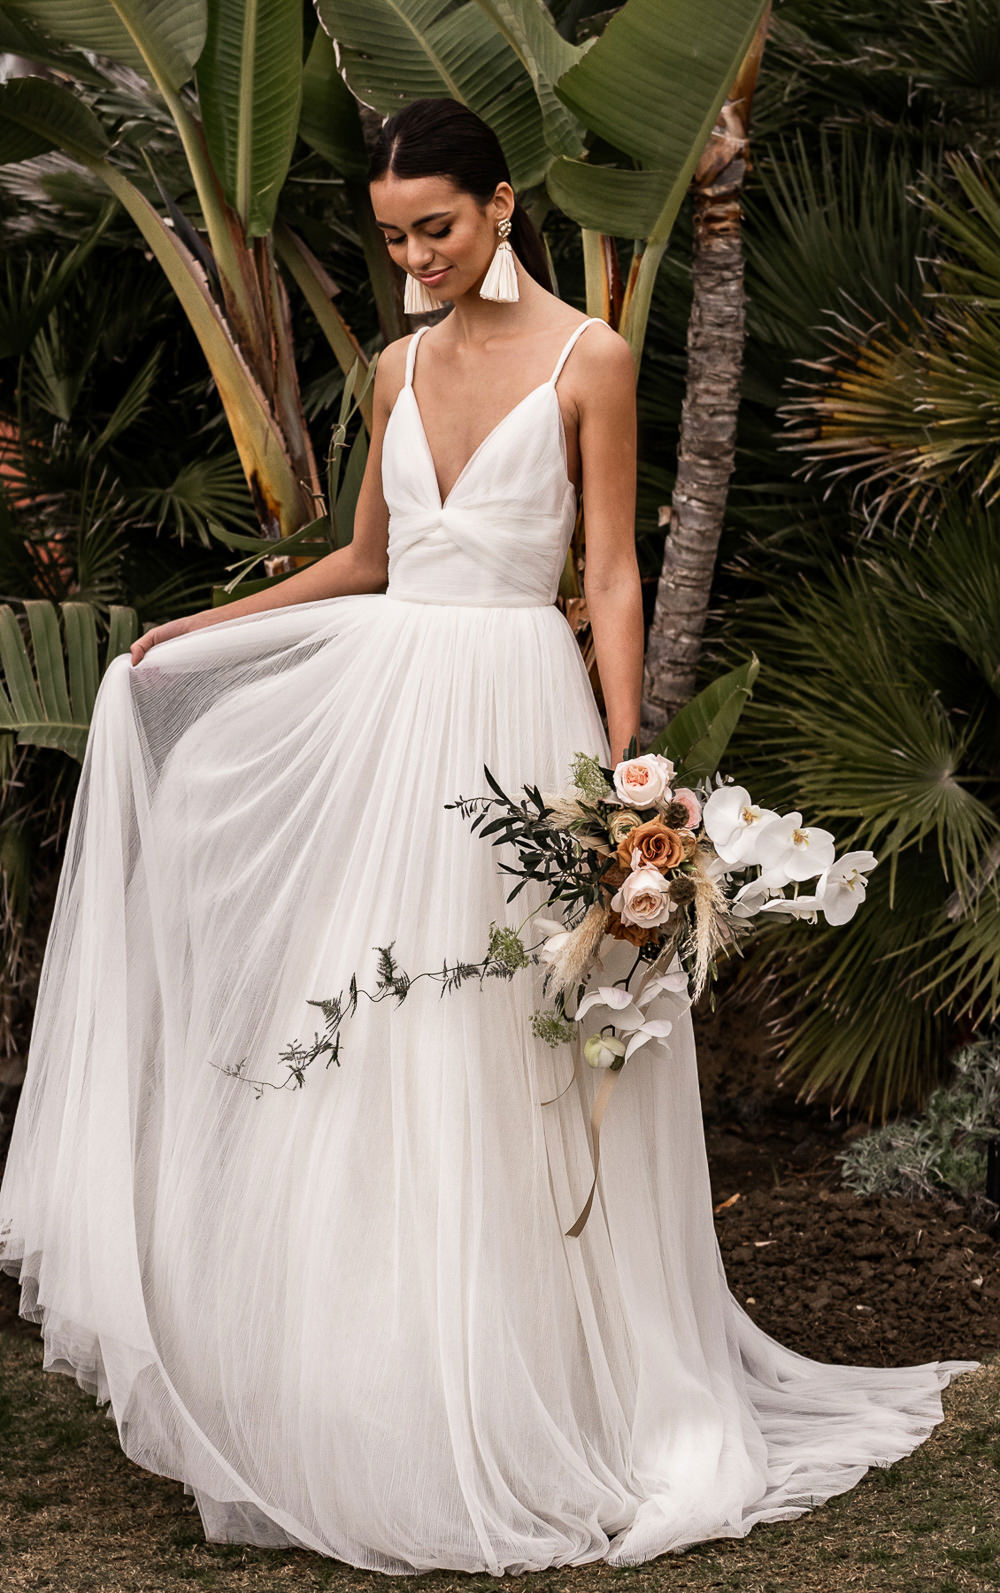 Dress Gown Bride Bridal Straps Skirt Marbella Elopement Wedding Nora Photography